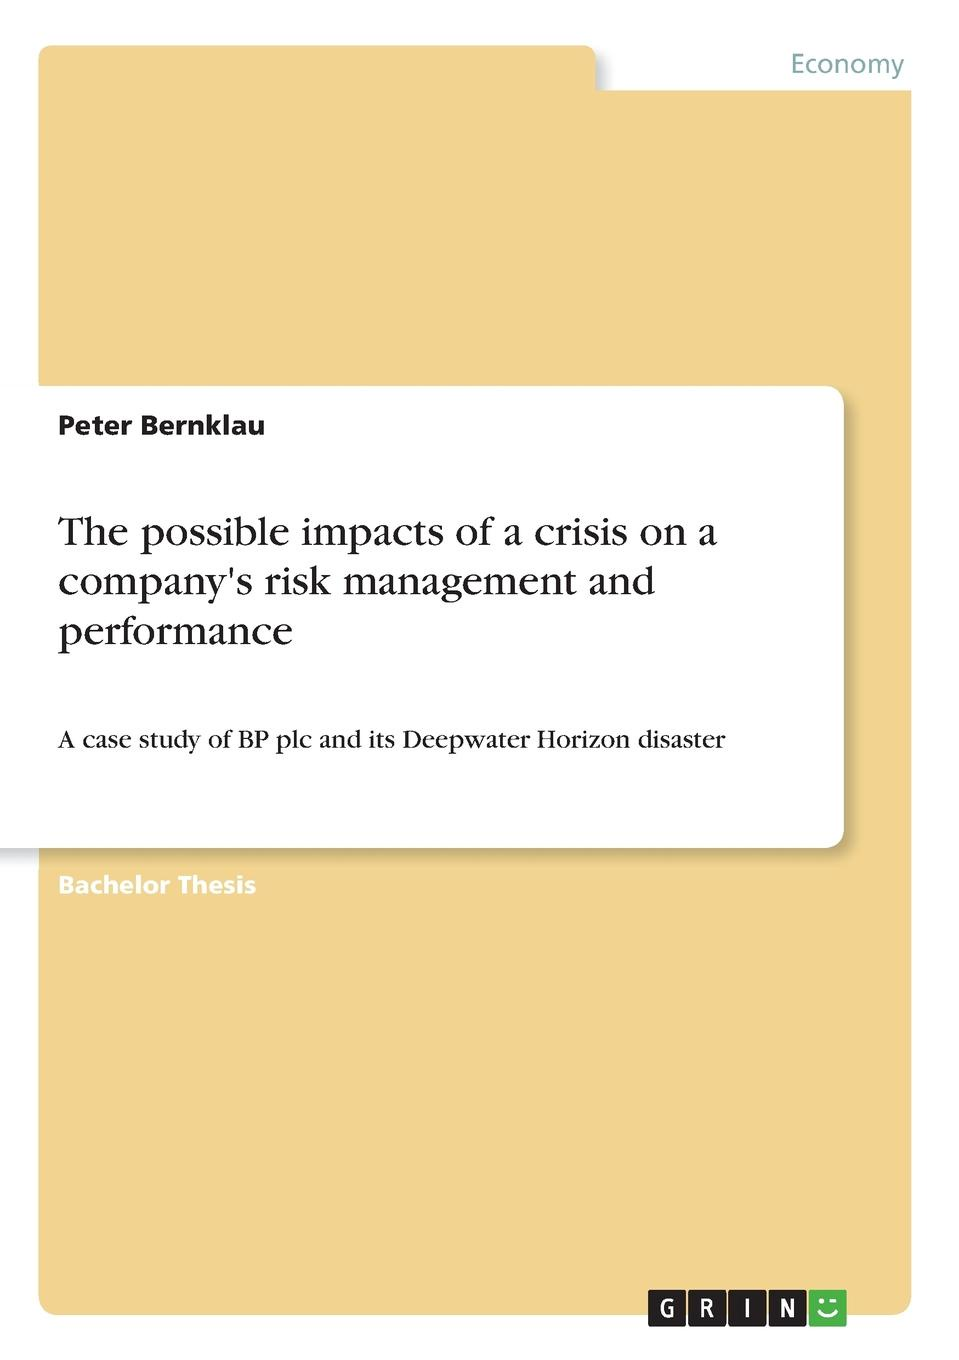 Peter Bernklau The possible impacts of a crisis on a company.s risk management and performance david axson a j the management mythbuster isbn 9780470586280